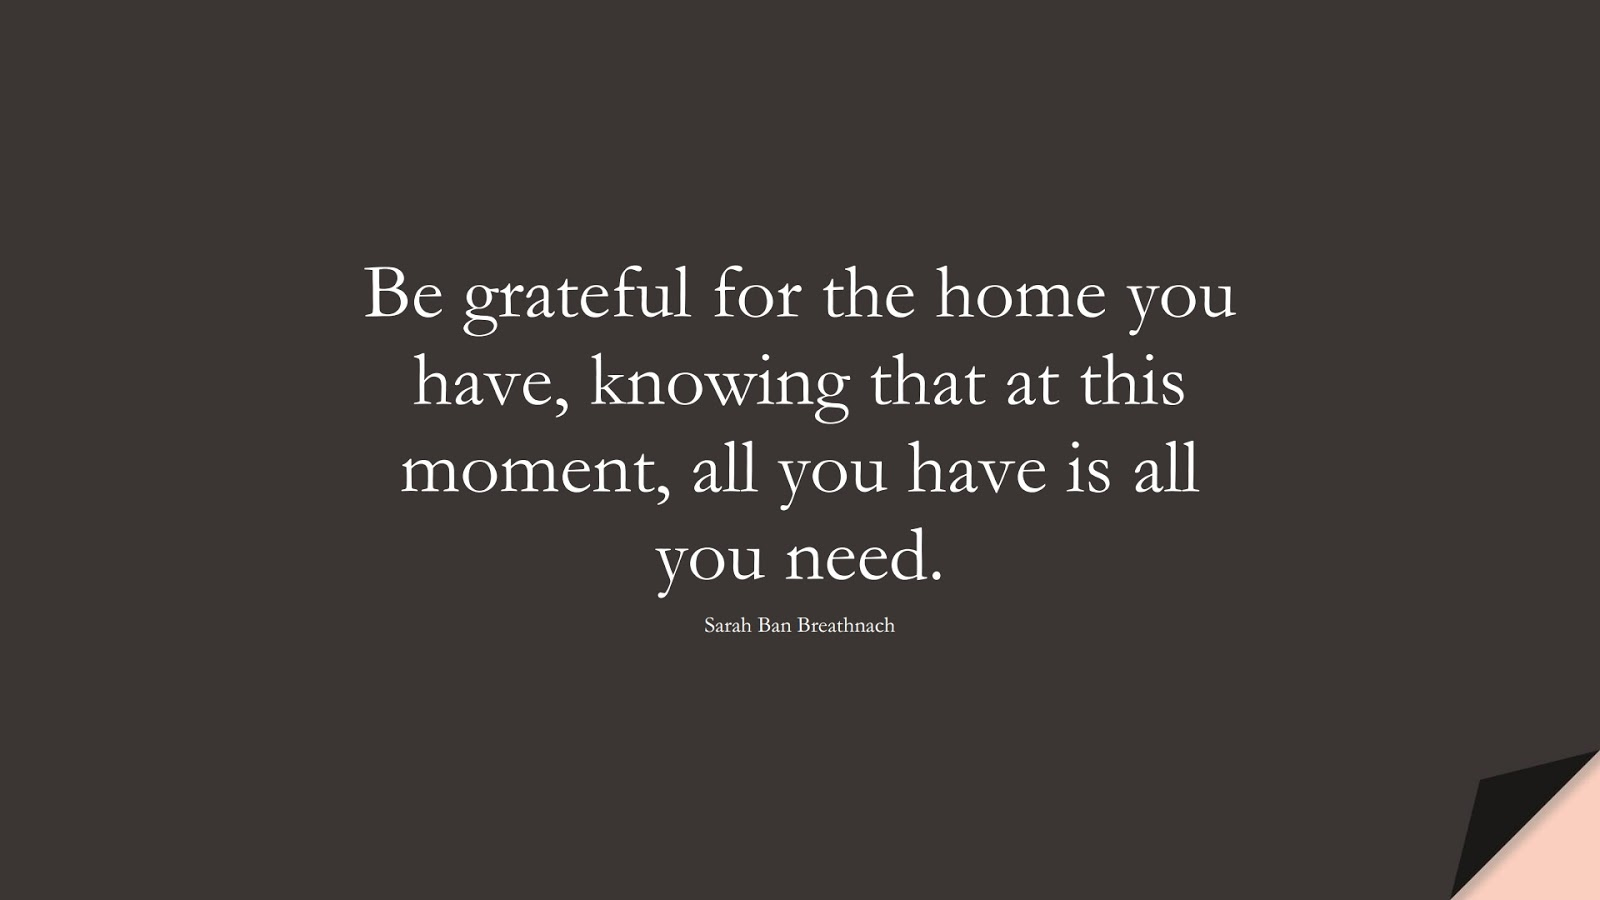 Be grateful for the home you have, knowing that at this moment, all you have is all you need. (Sarah Ban Breathnach);  #FamilyQuotes